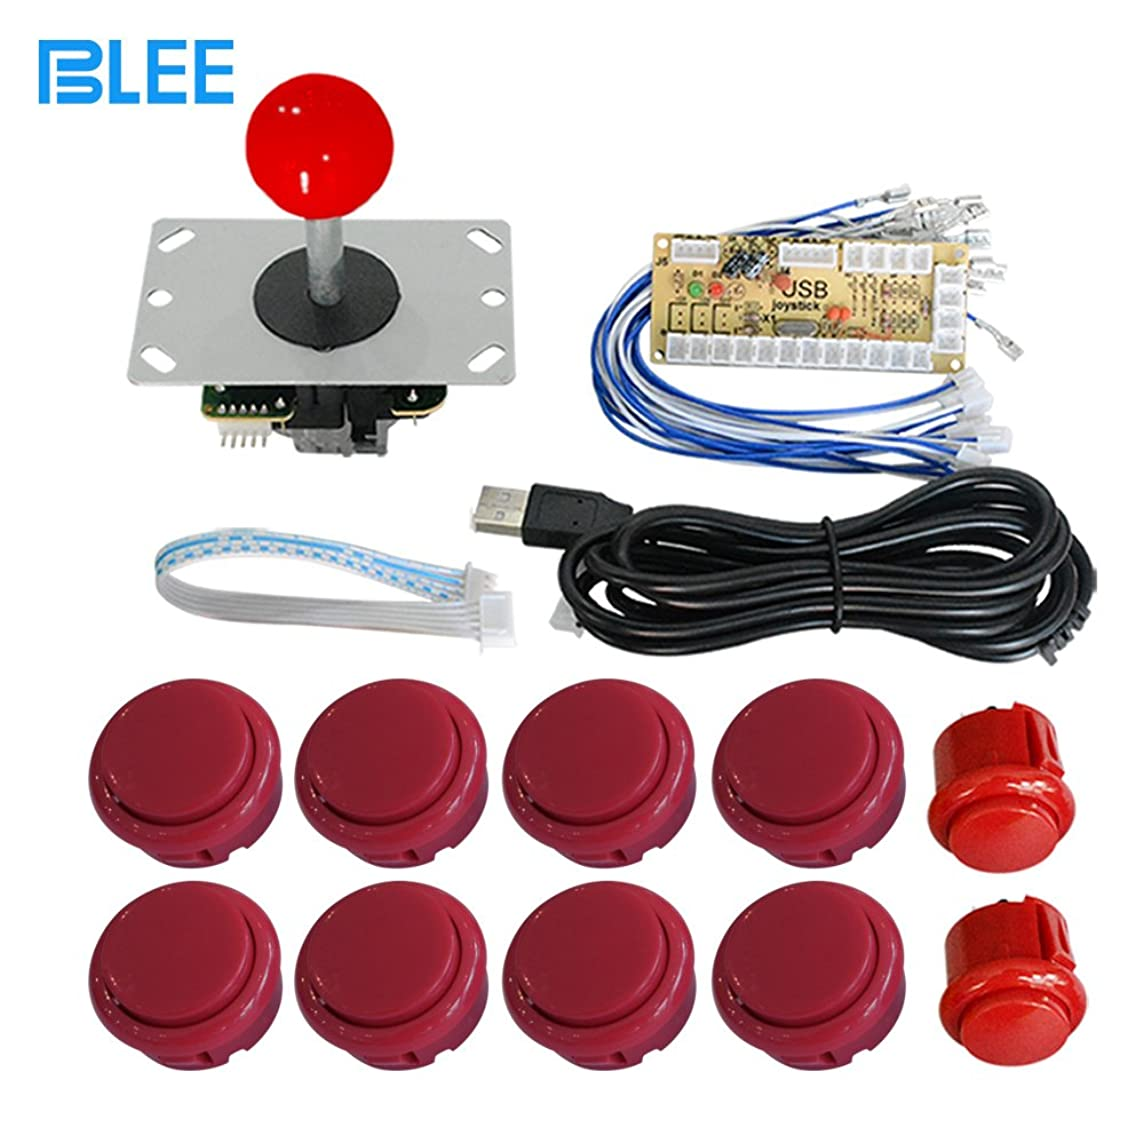 BLEE Zero Delay USB Encoder Board PC Arcade Game 5 Pin Joystick Cabinet DIY Parts Kit for Mame Jamma & Fighting Games Support All Windows Systems (Red)